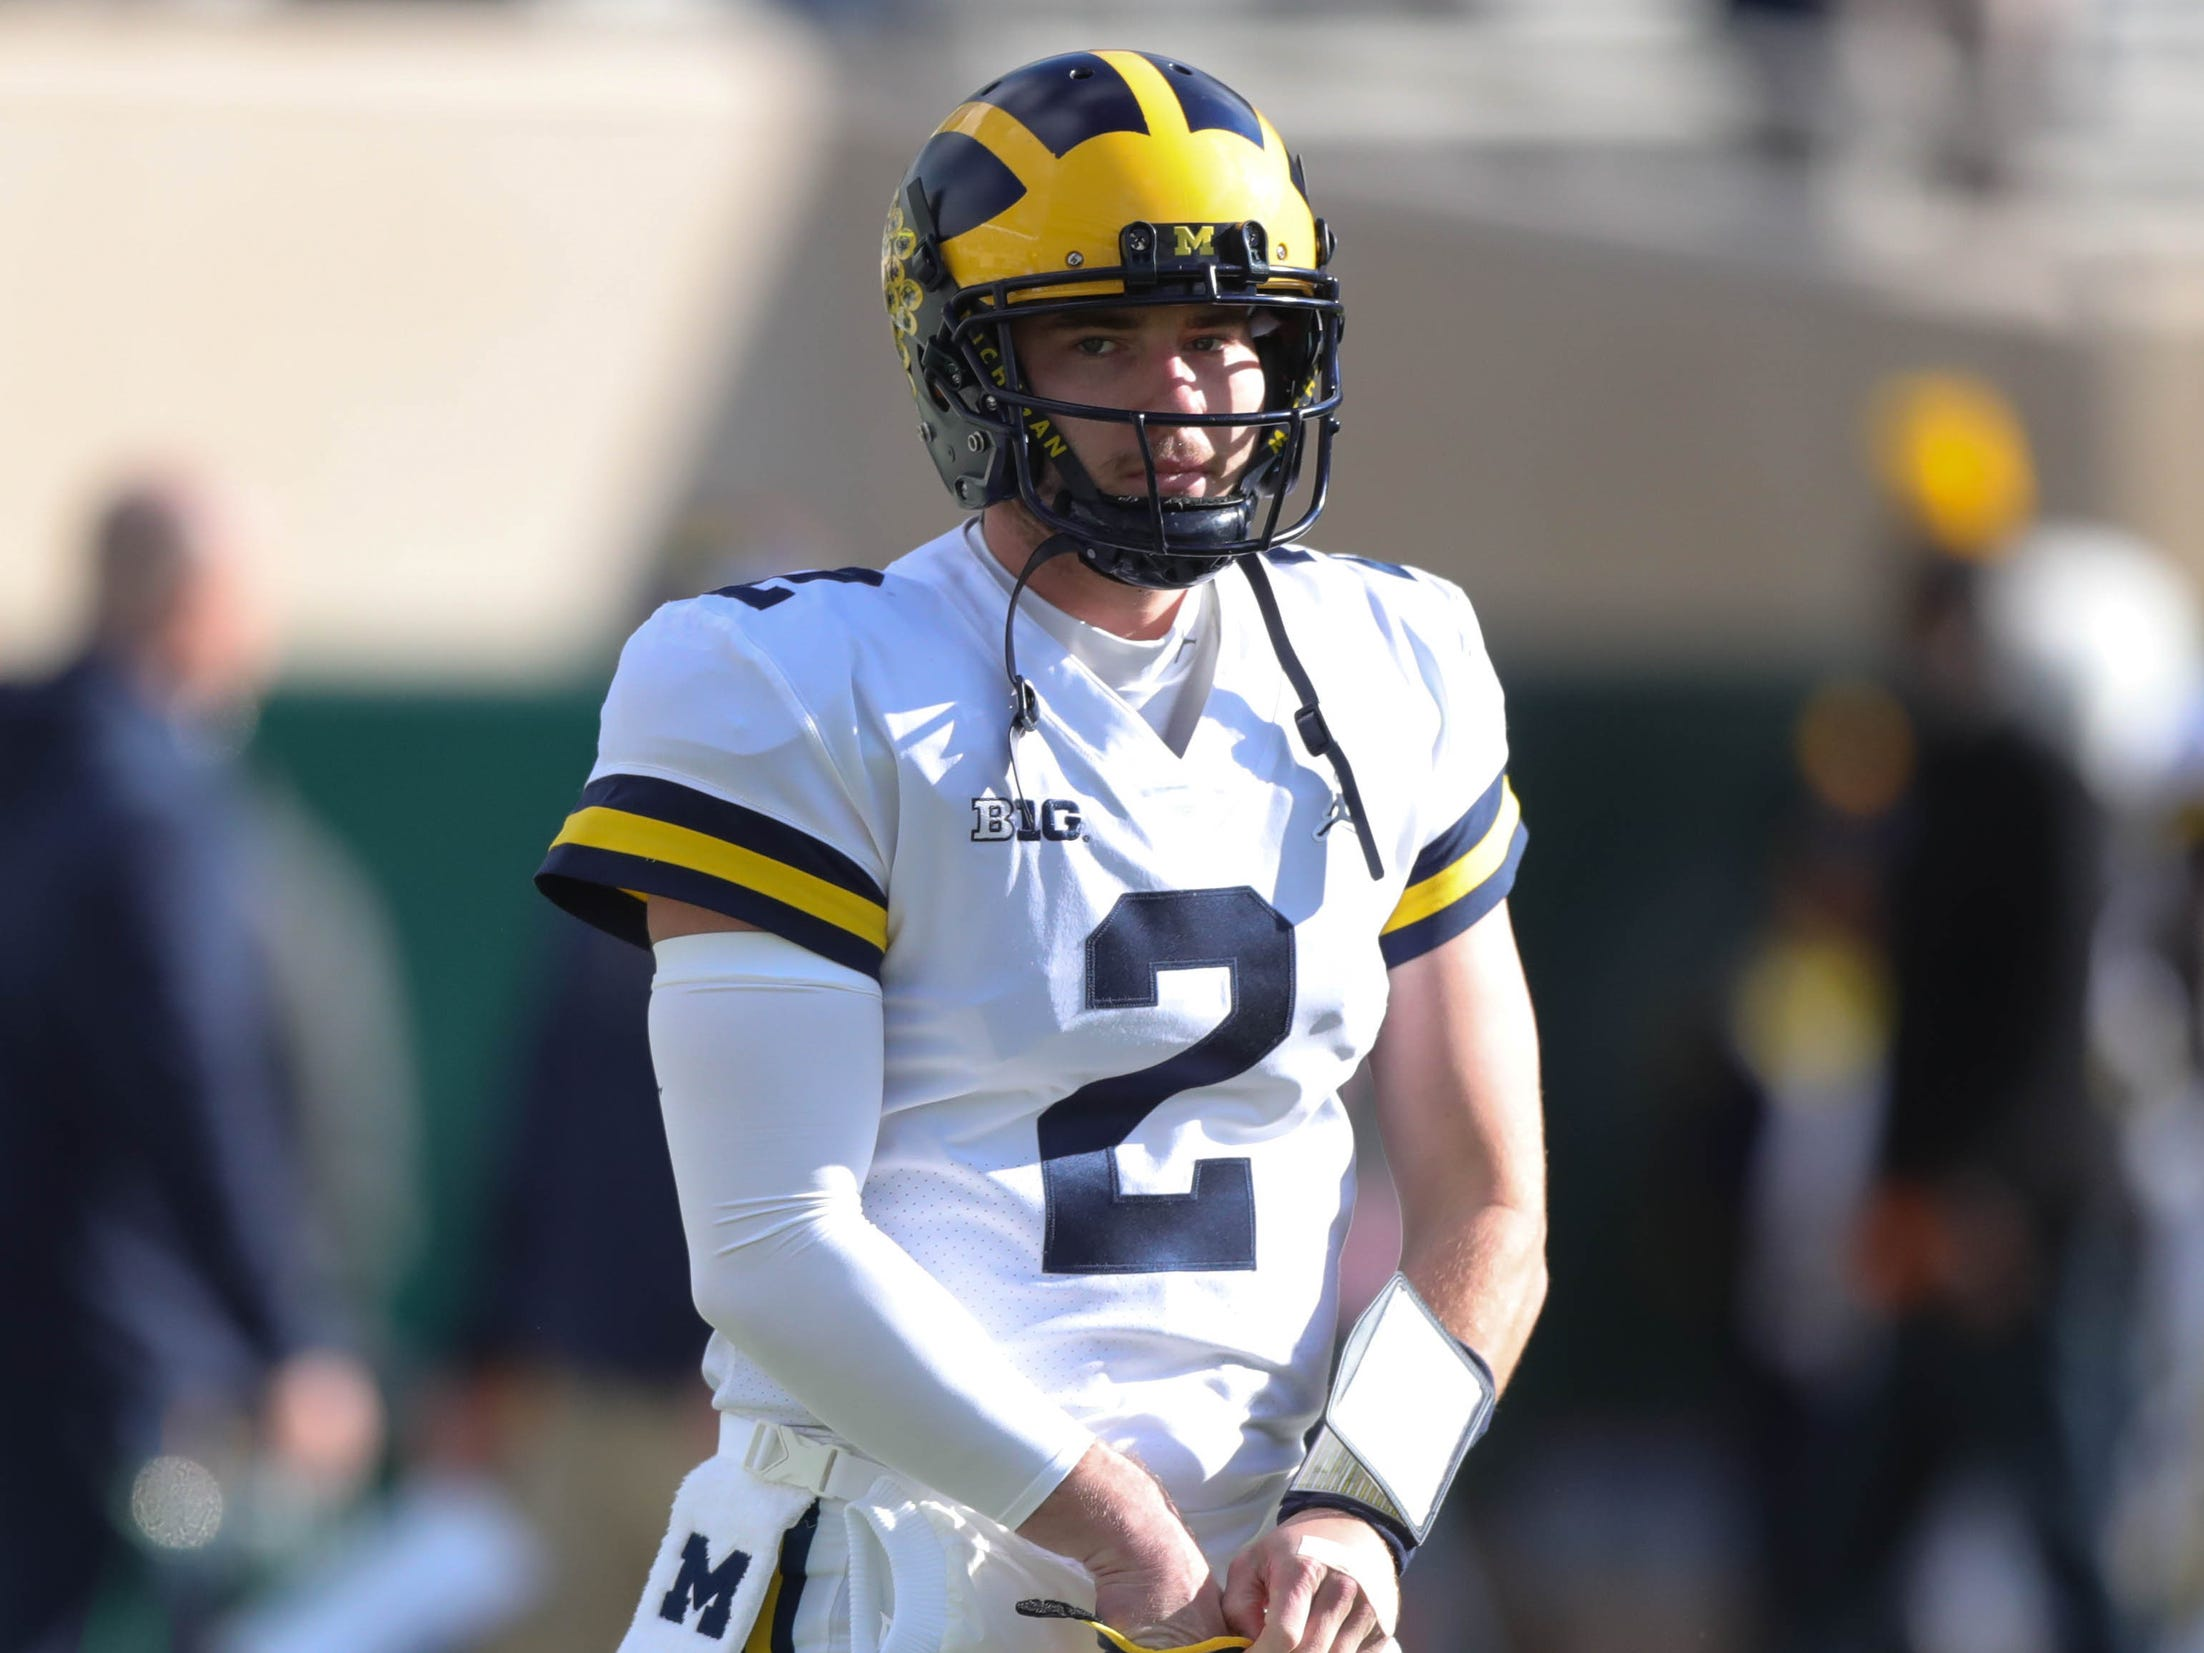 Michigan's Shea Patterson warms up before action against Michigan State on Saturday, Oct. 20, 2018, at Spartan Stadium in East Lansing, Mich.